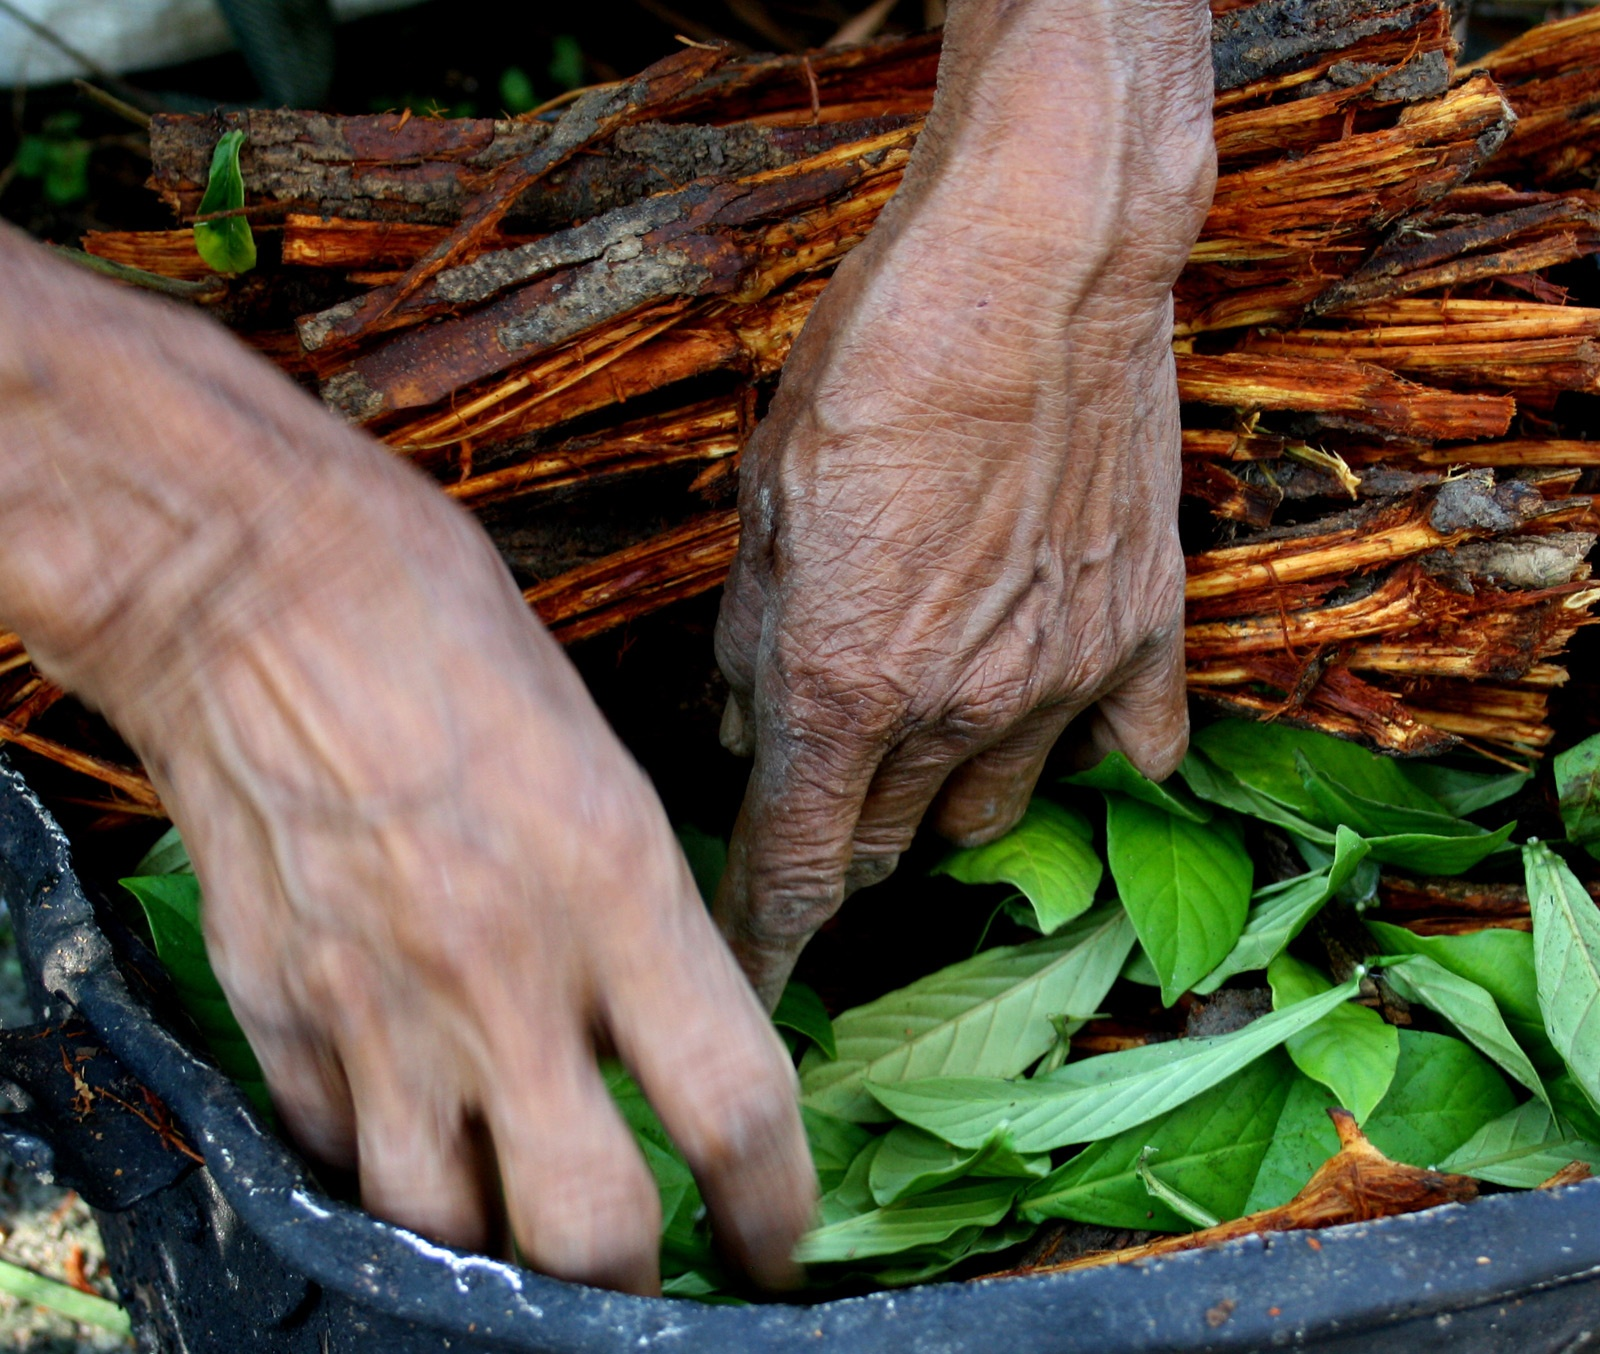 ayahuasca's legal status